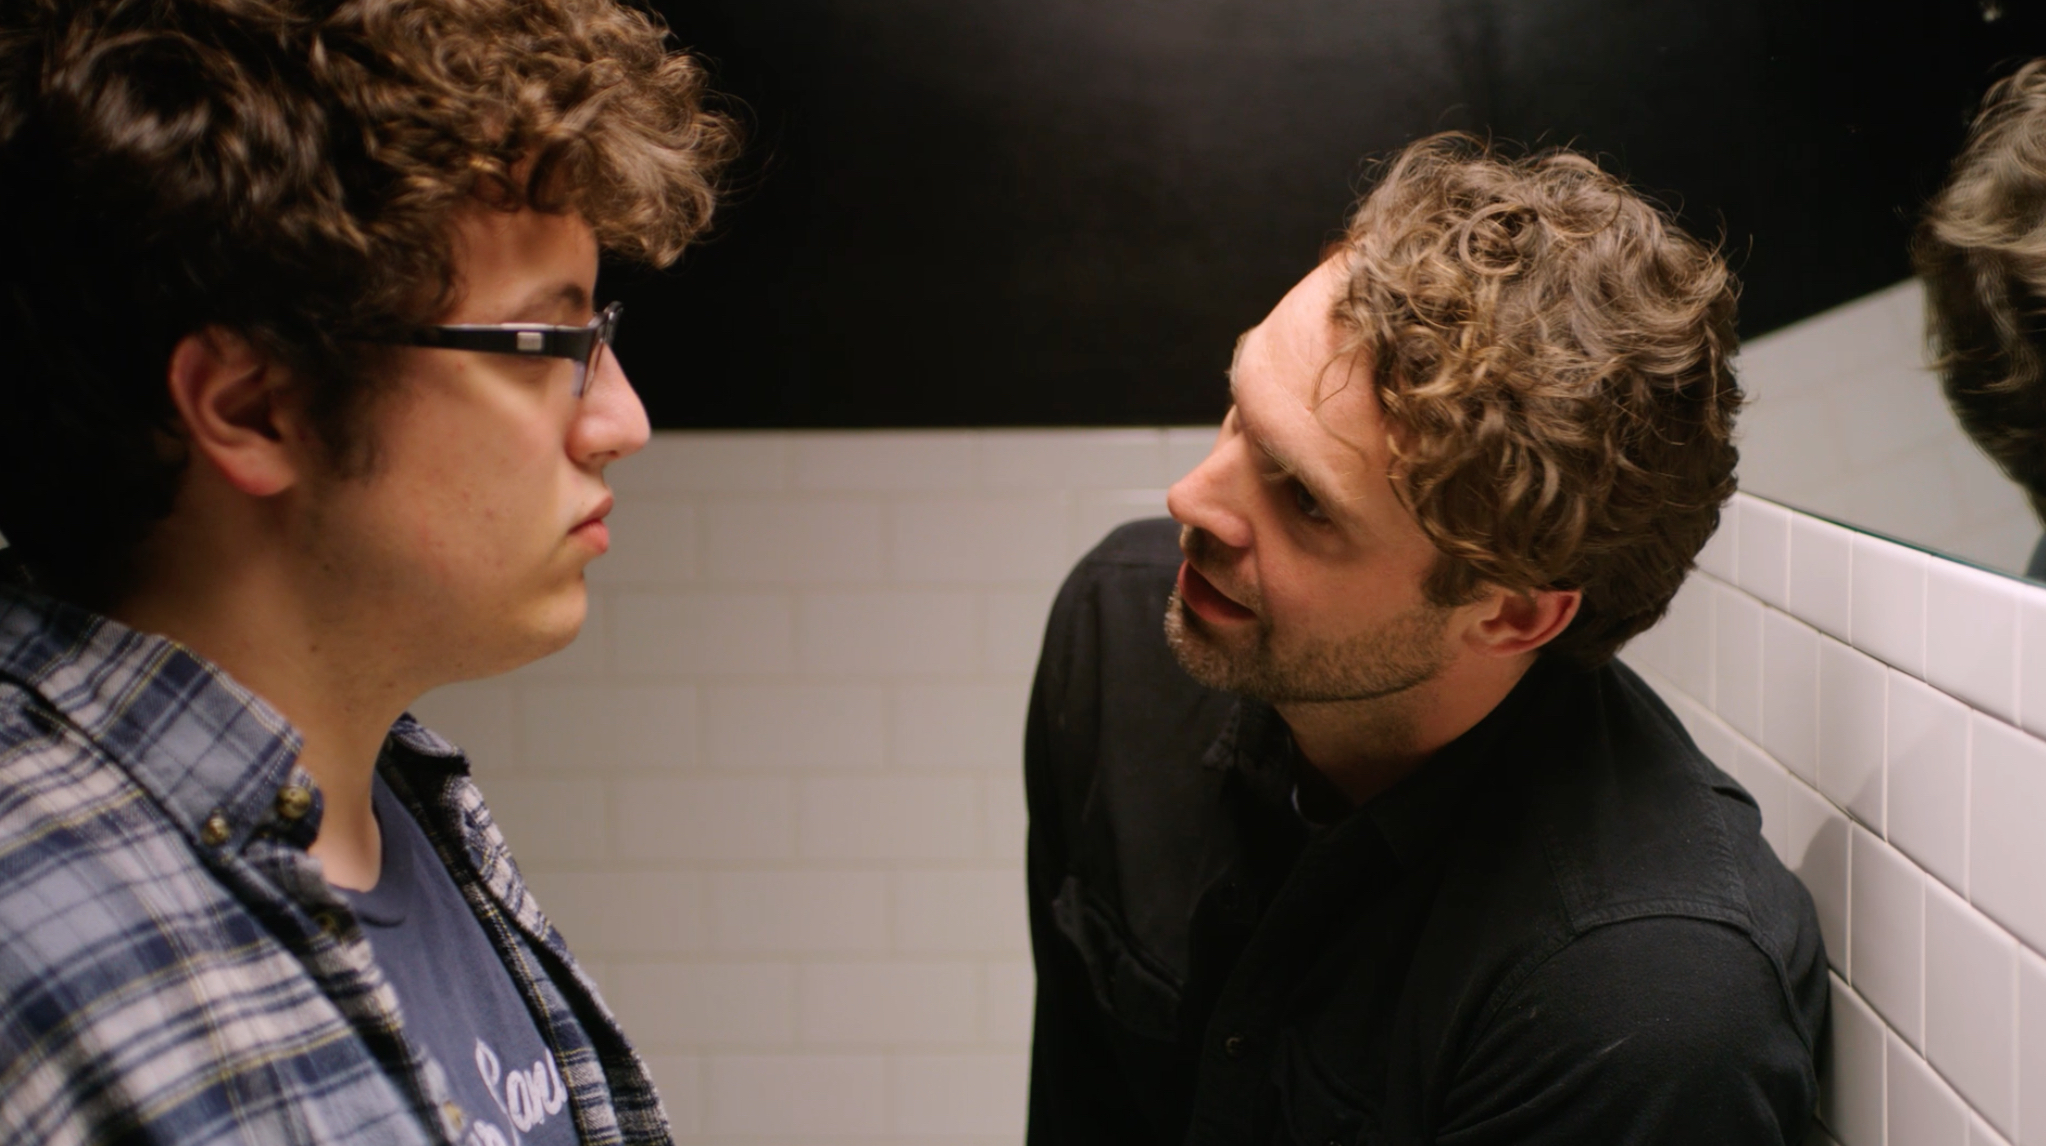 Actors Dimitri Spiridakis (Danny), left, and Rob Hancock (Tony) in a pivotal moment between father and son in